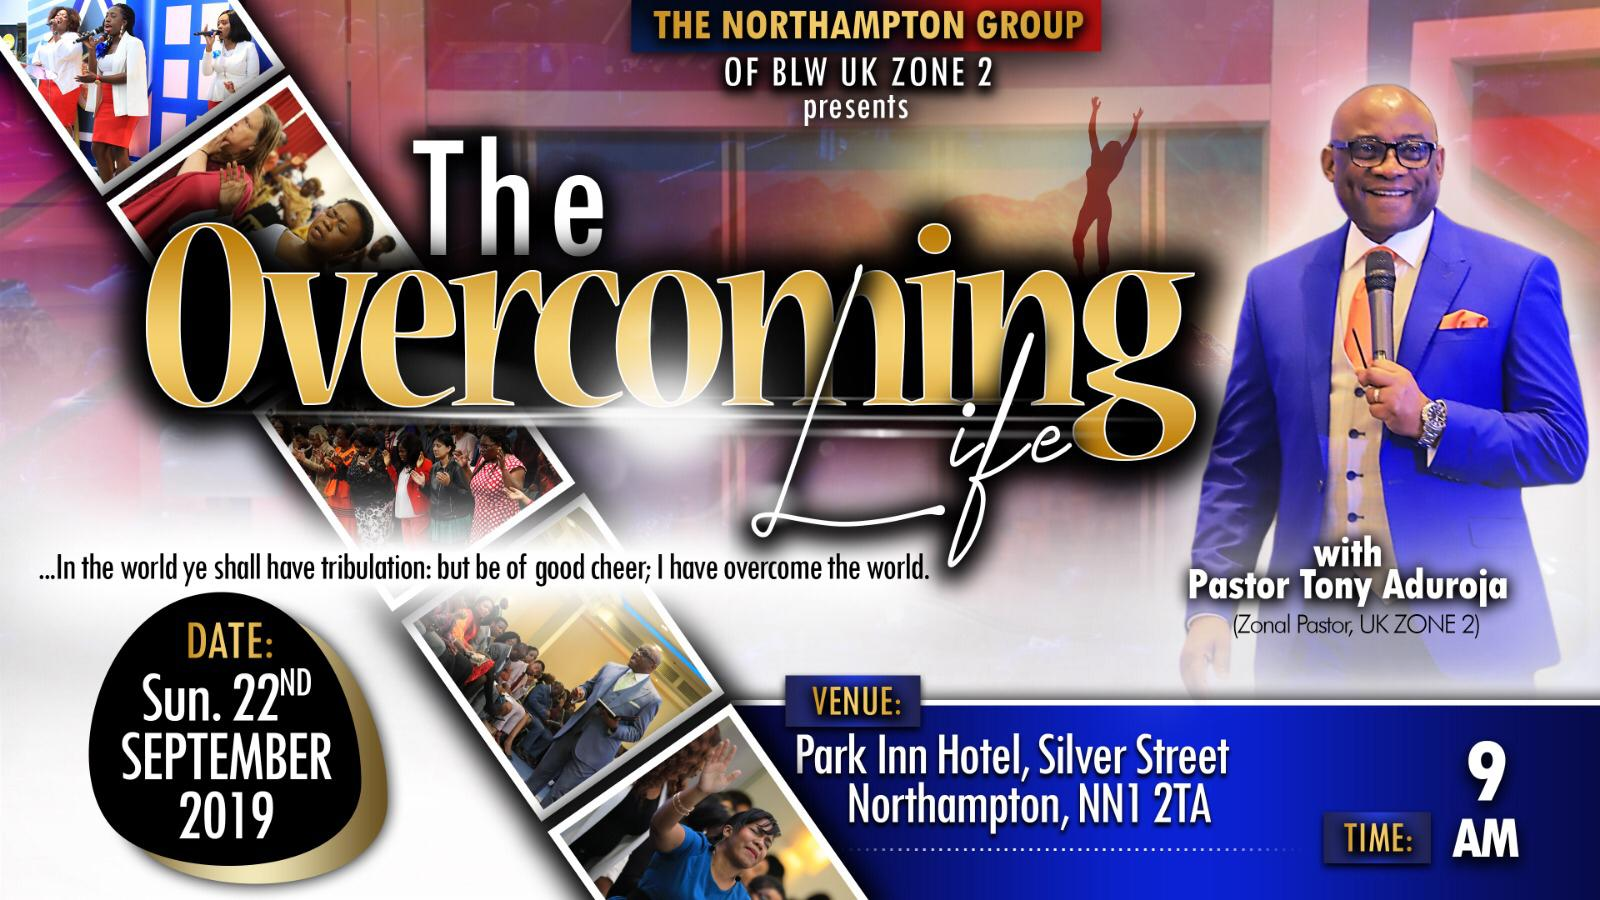 #UKZone2 #LoveWorldWellingborough #TheOvercomingLi